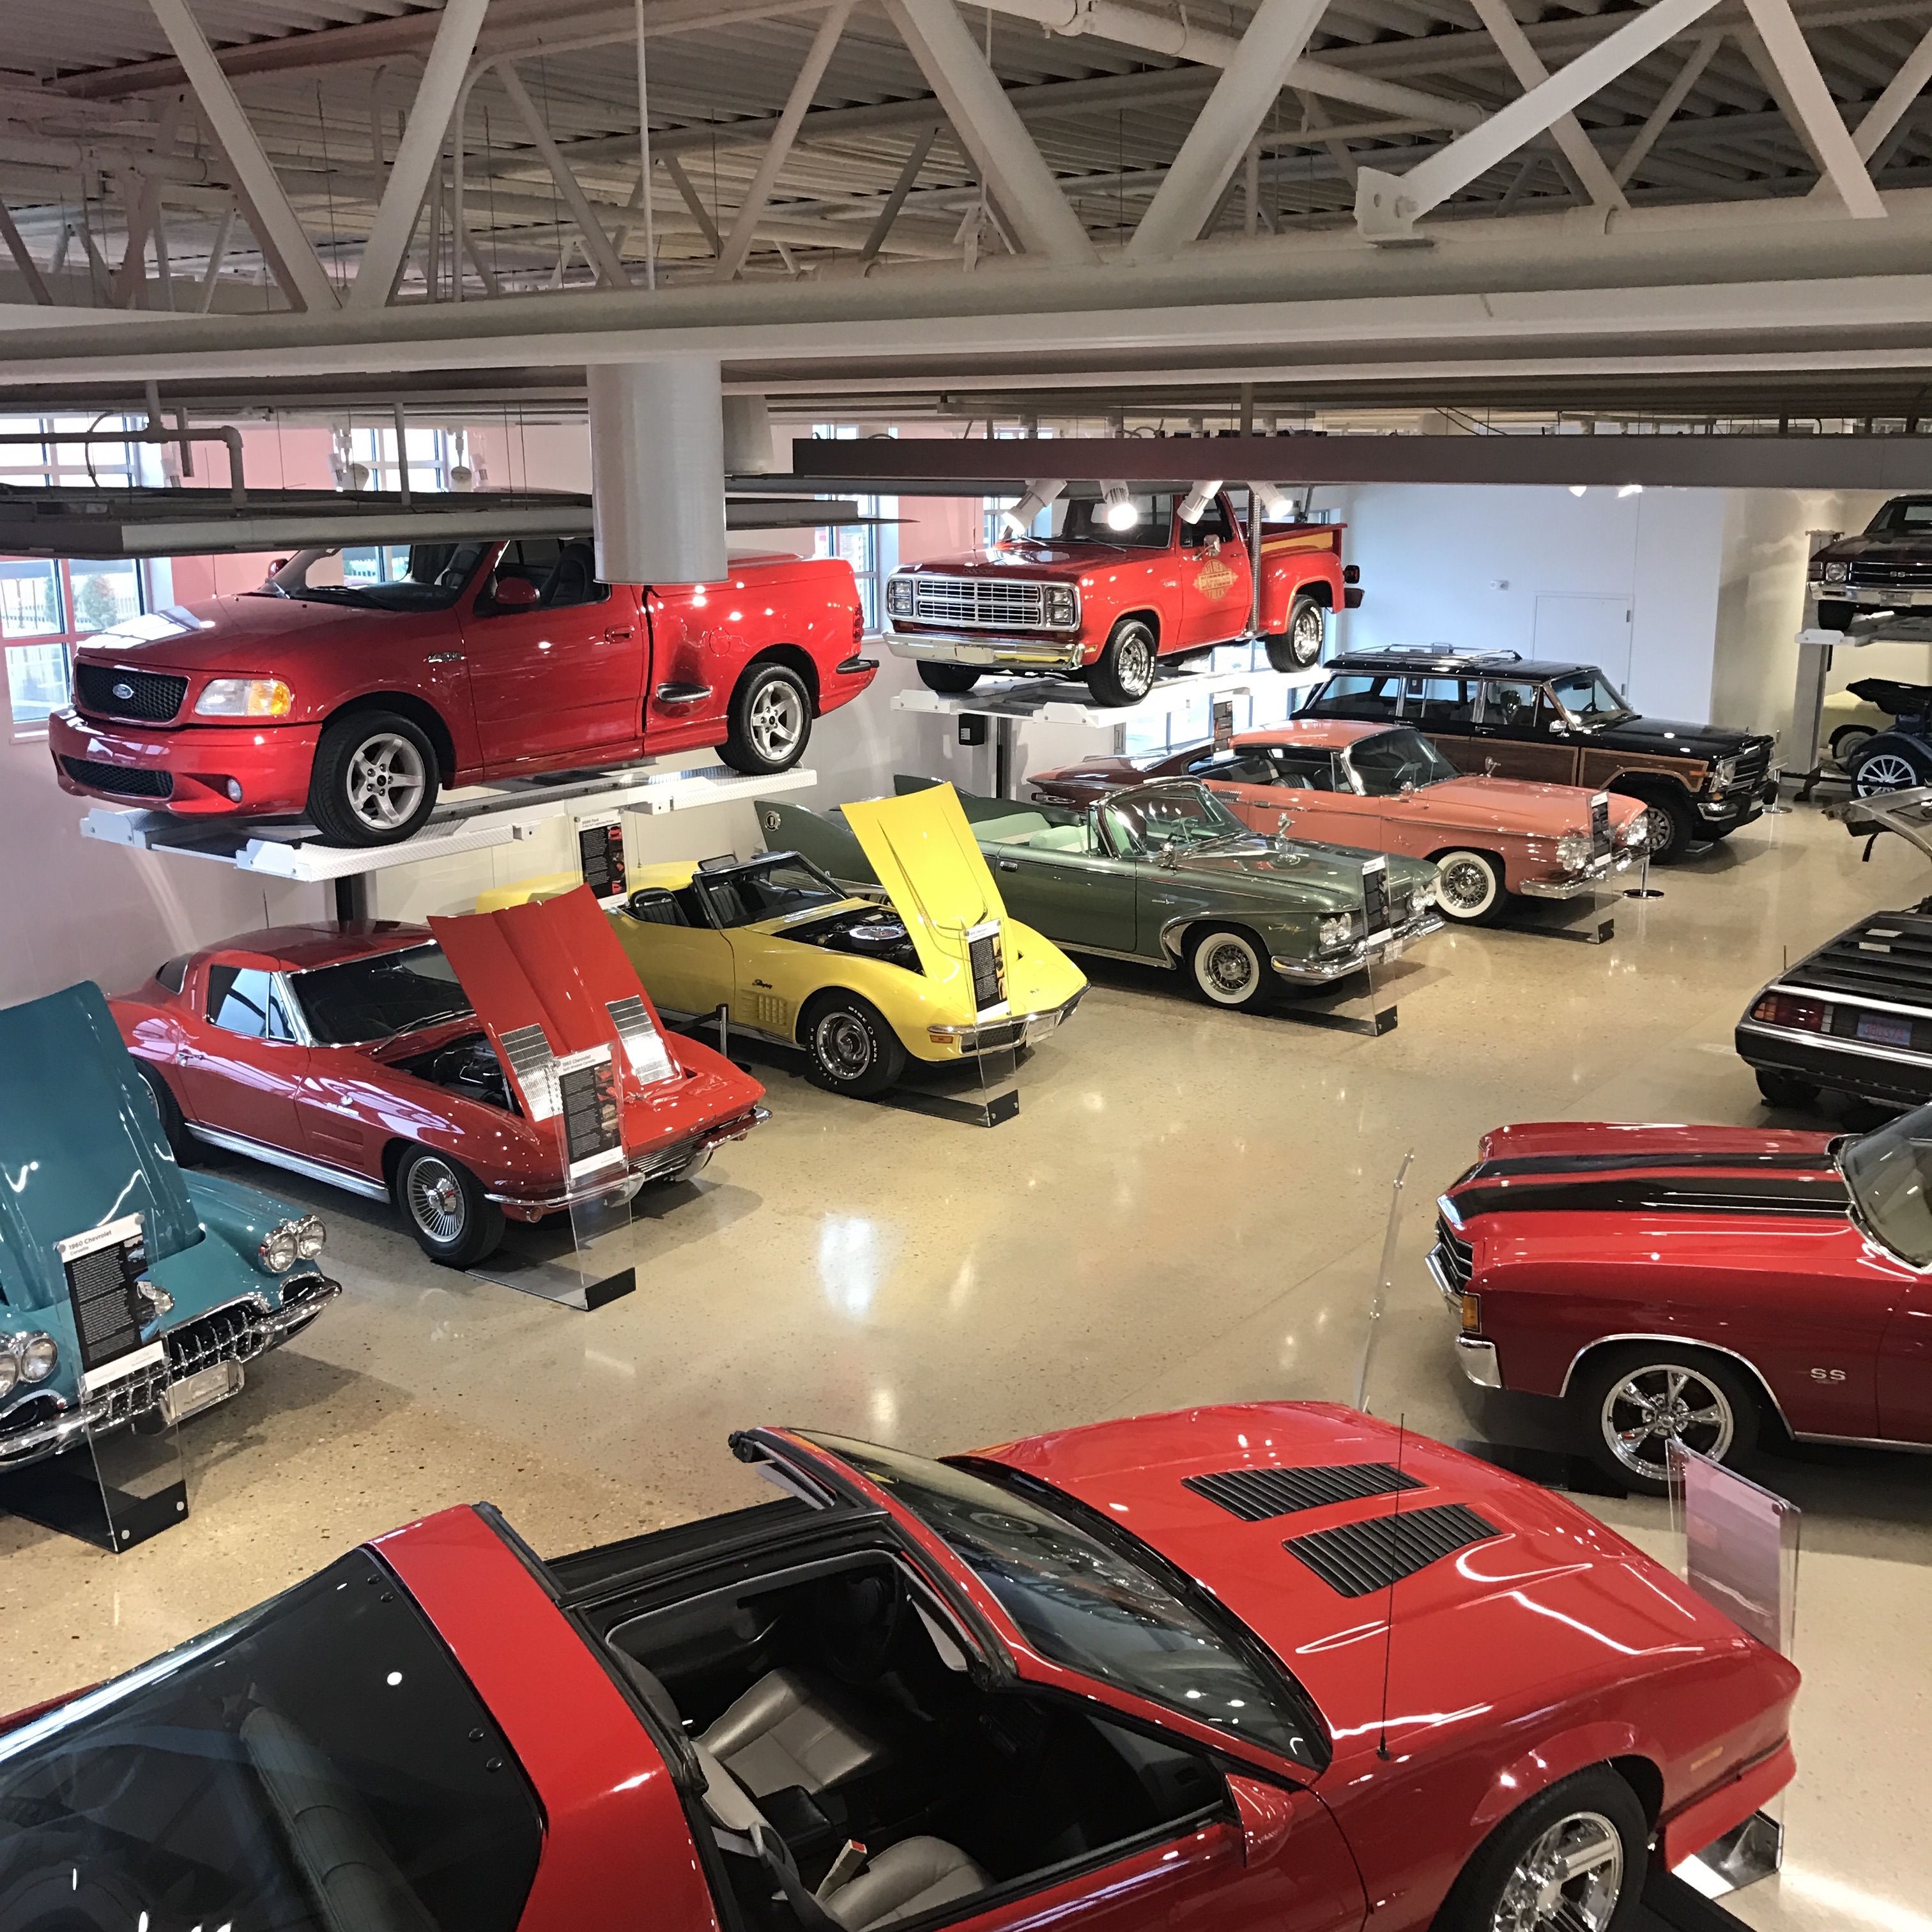 Cars on the floor at the Automobile Gallery